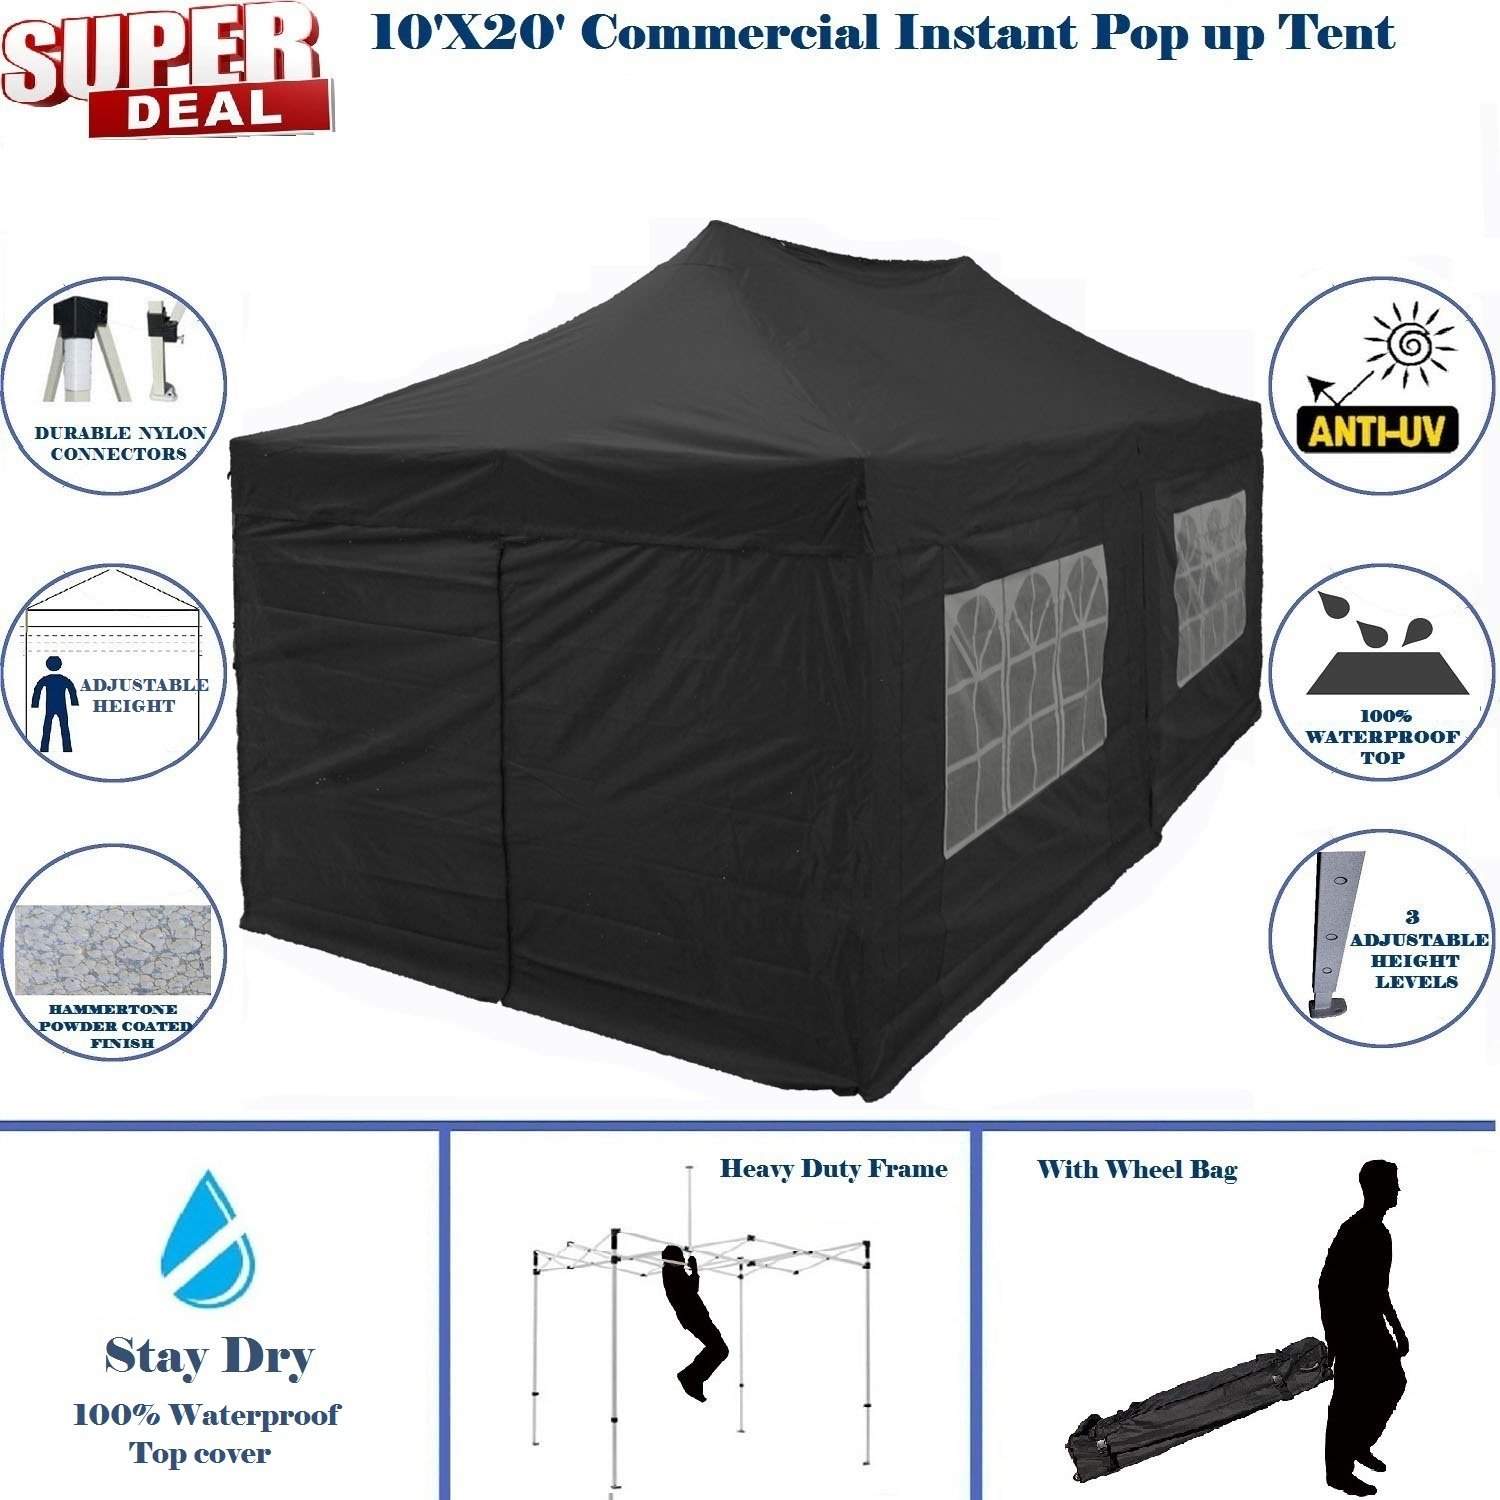 10'x20' Pop UP Canopy Wedding Party Tent Instant EZ UP Canopy Black - F Model Commercial Frame By DELTA